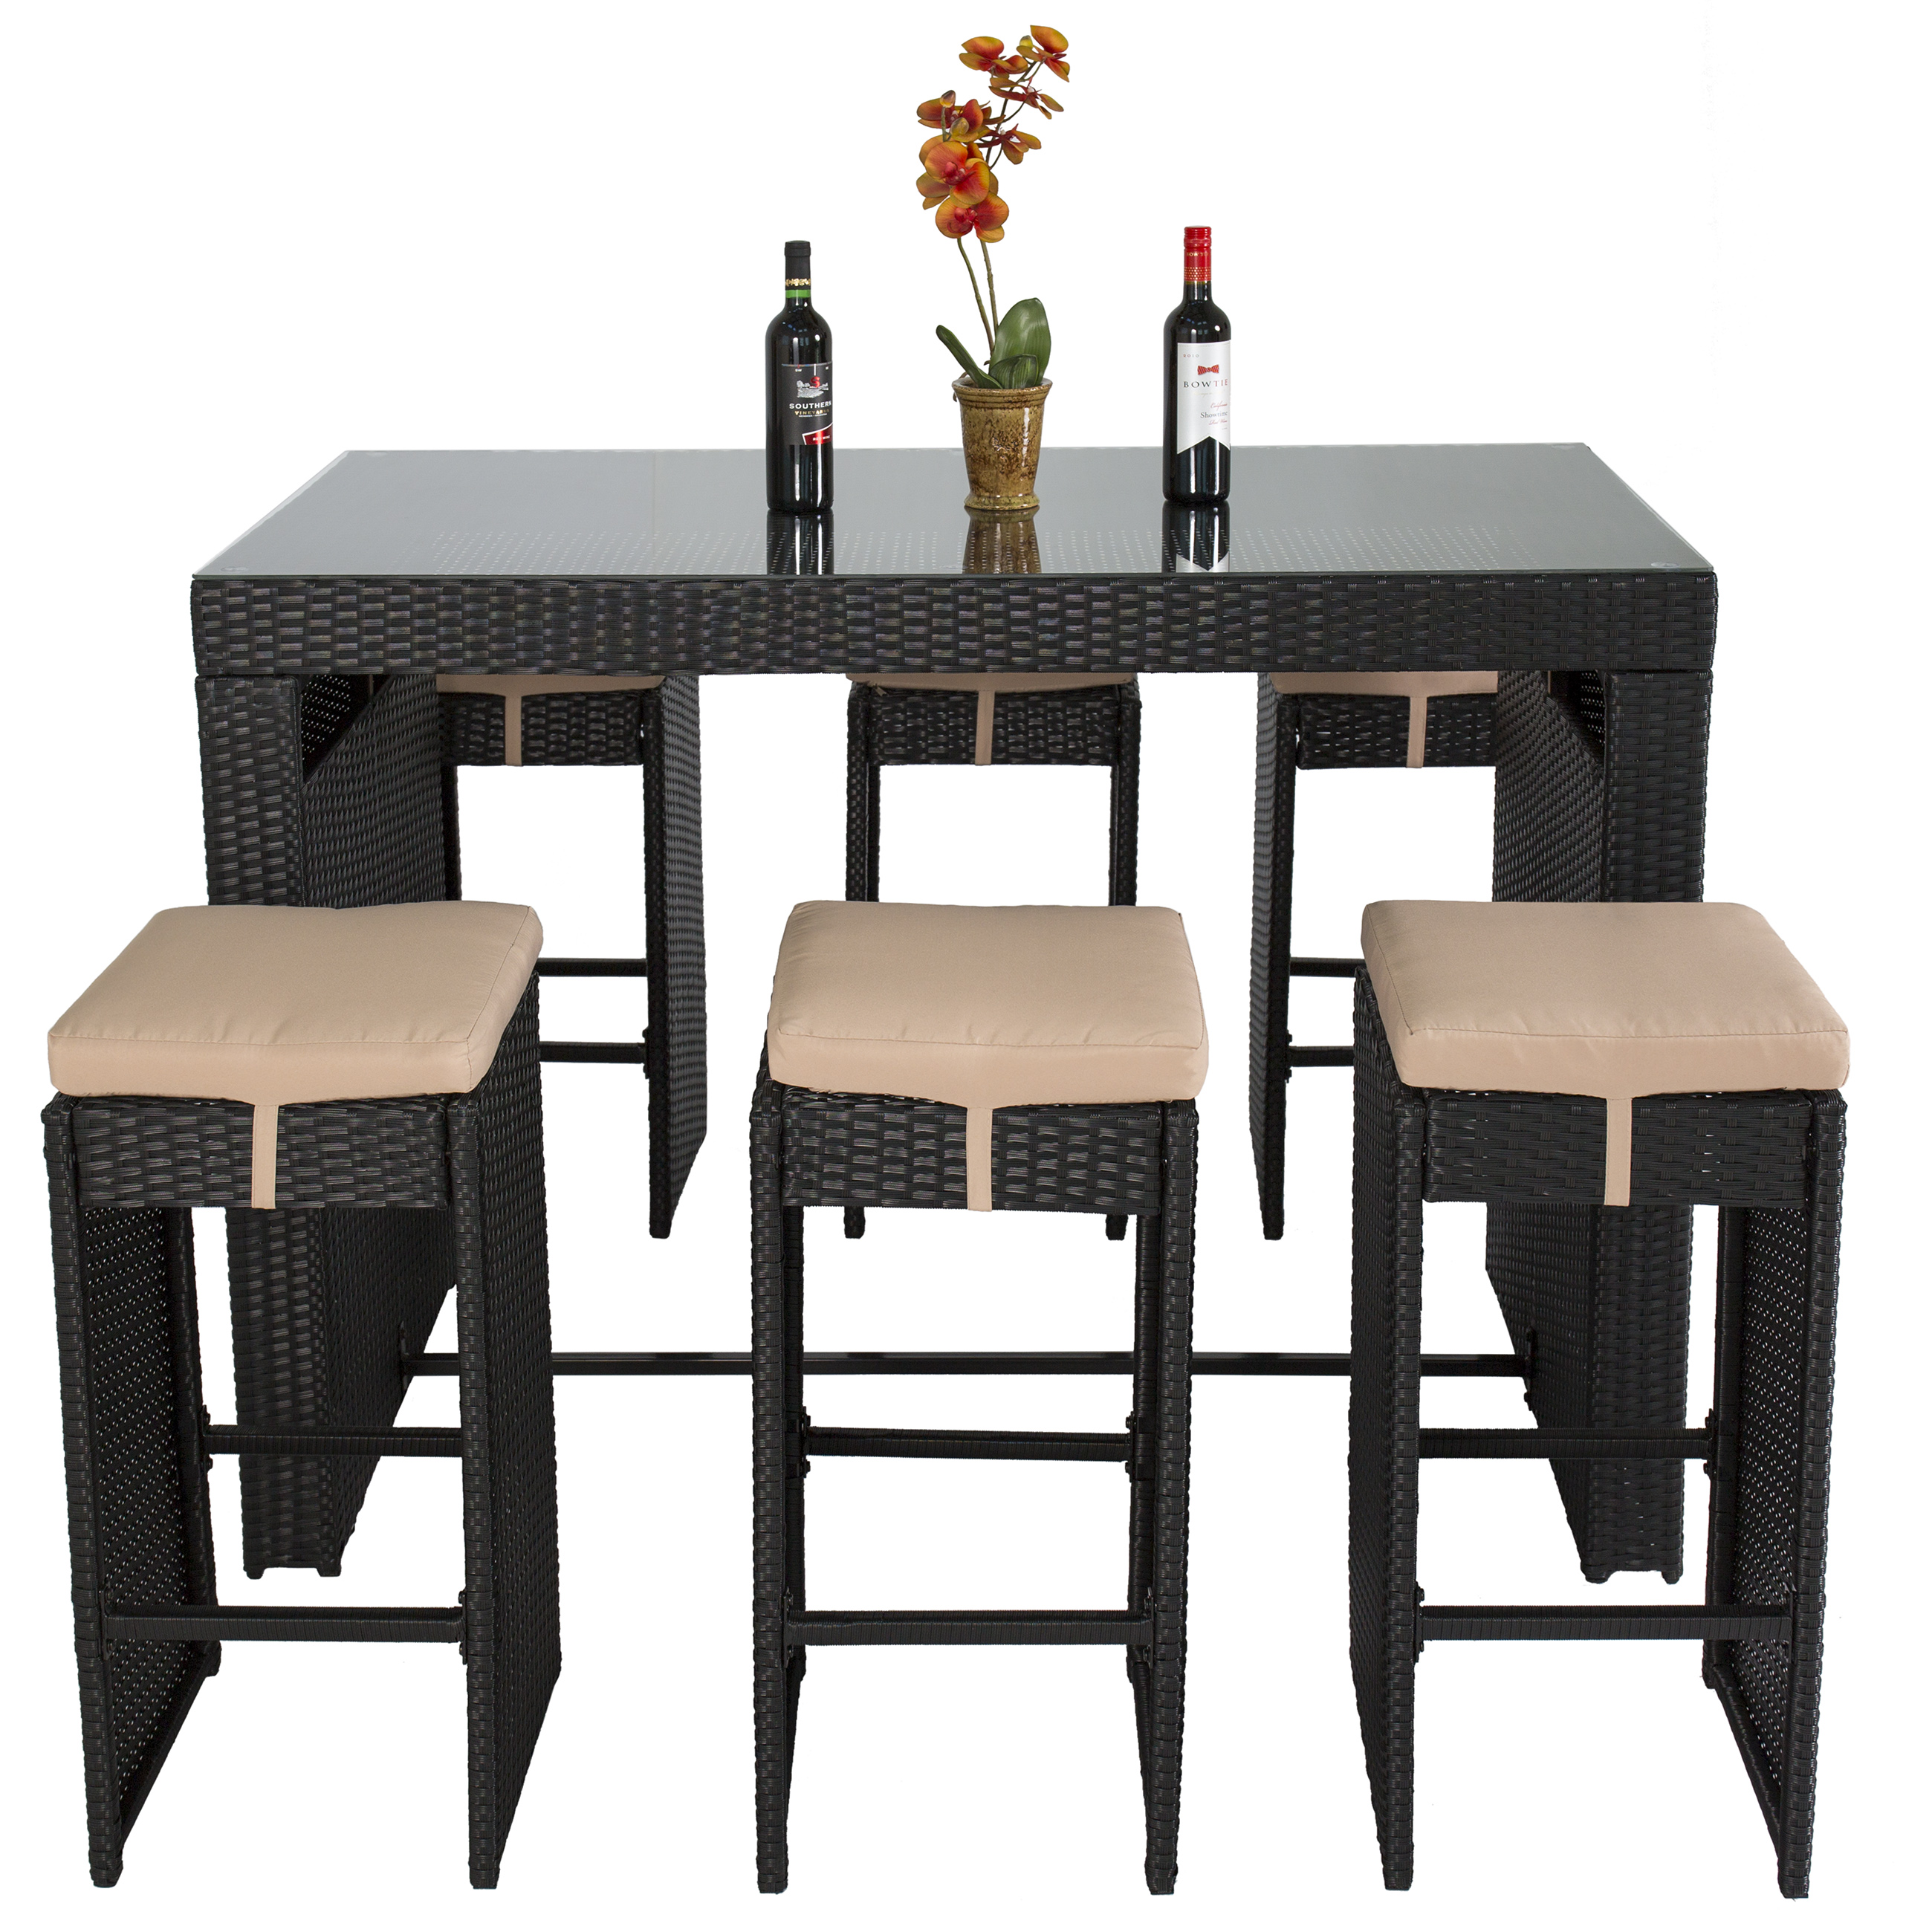 Bar Height Outdoor Dining Table Set Size Dining Tables5